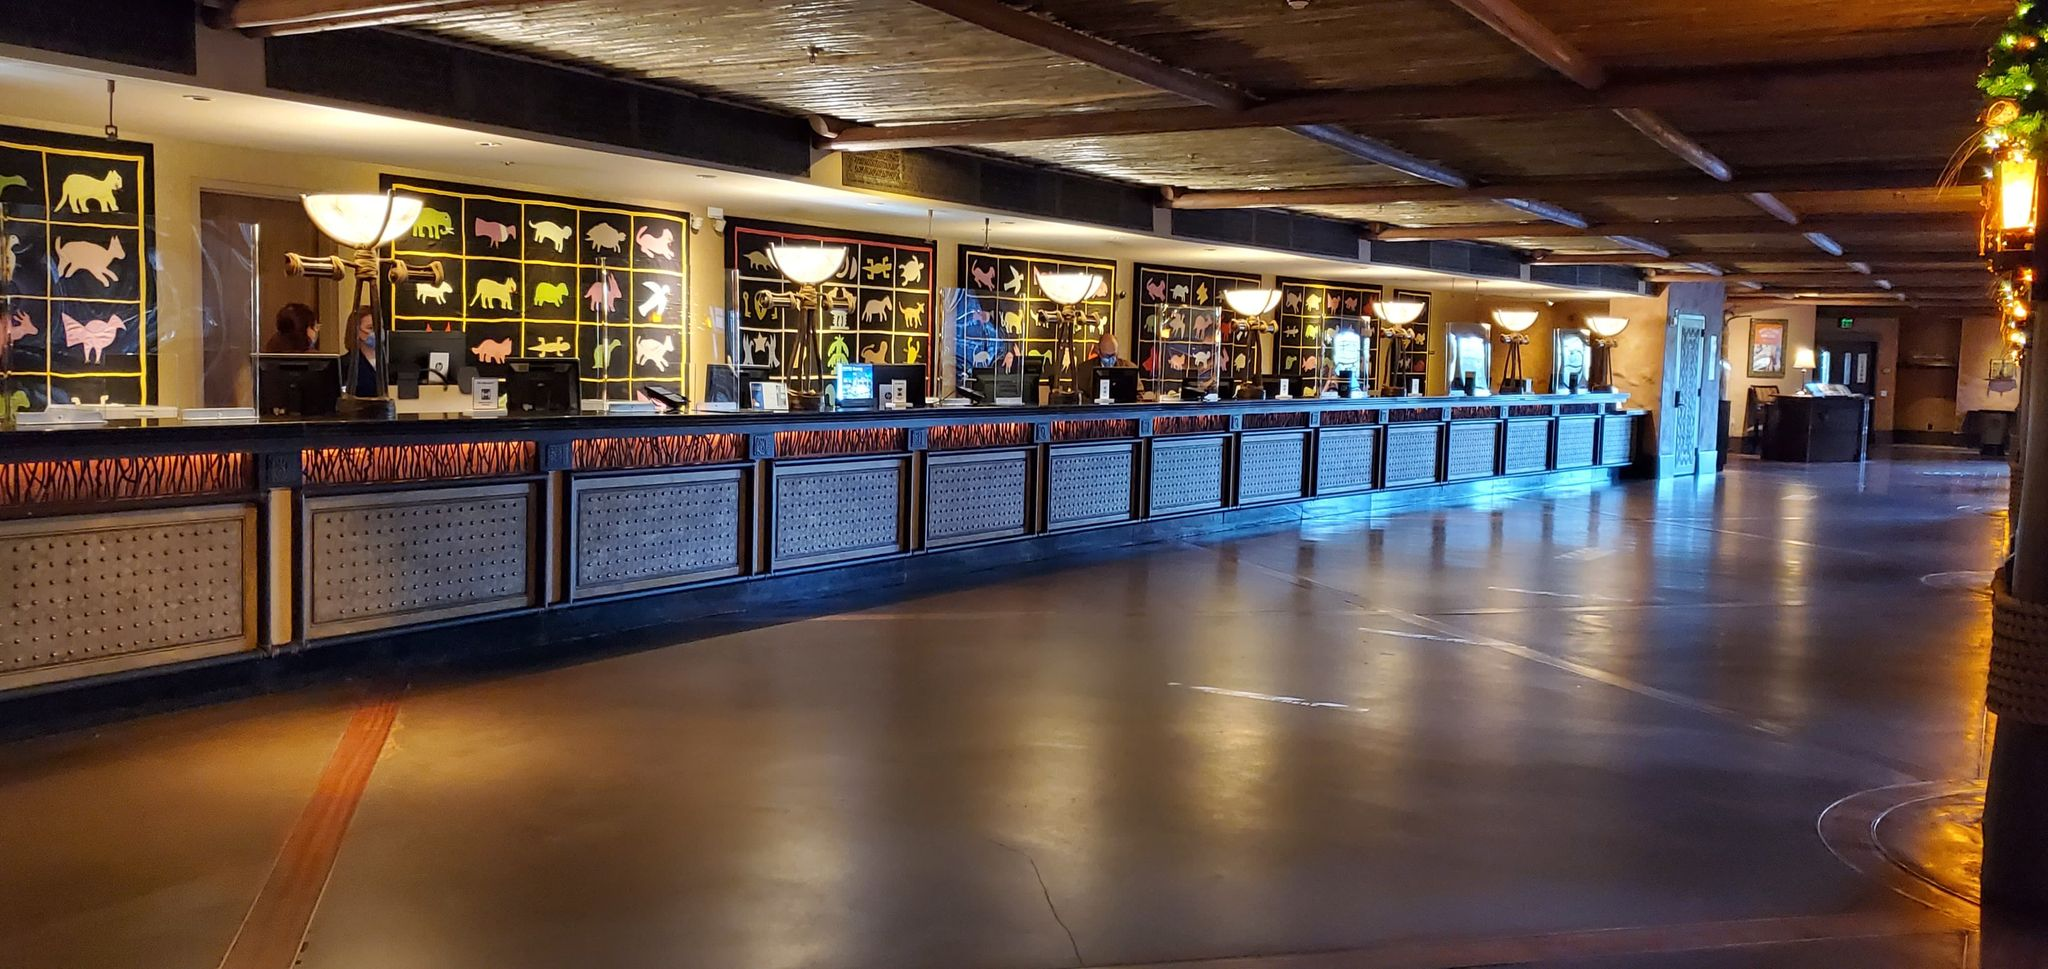 Check-in area in Jambo House at Animal Kingdom Lodge